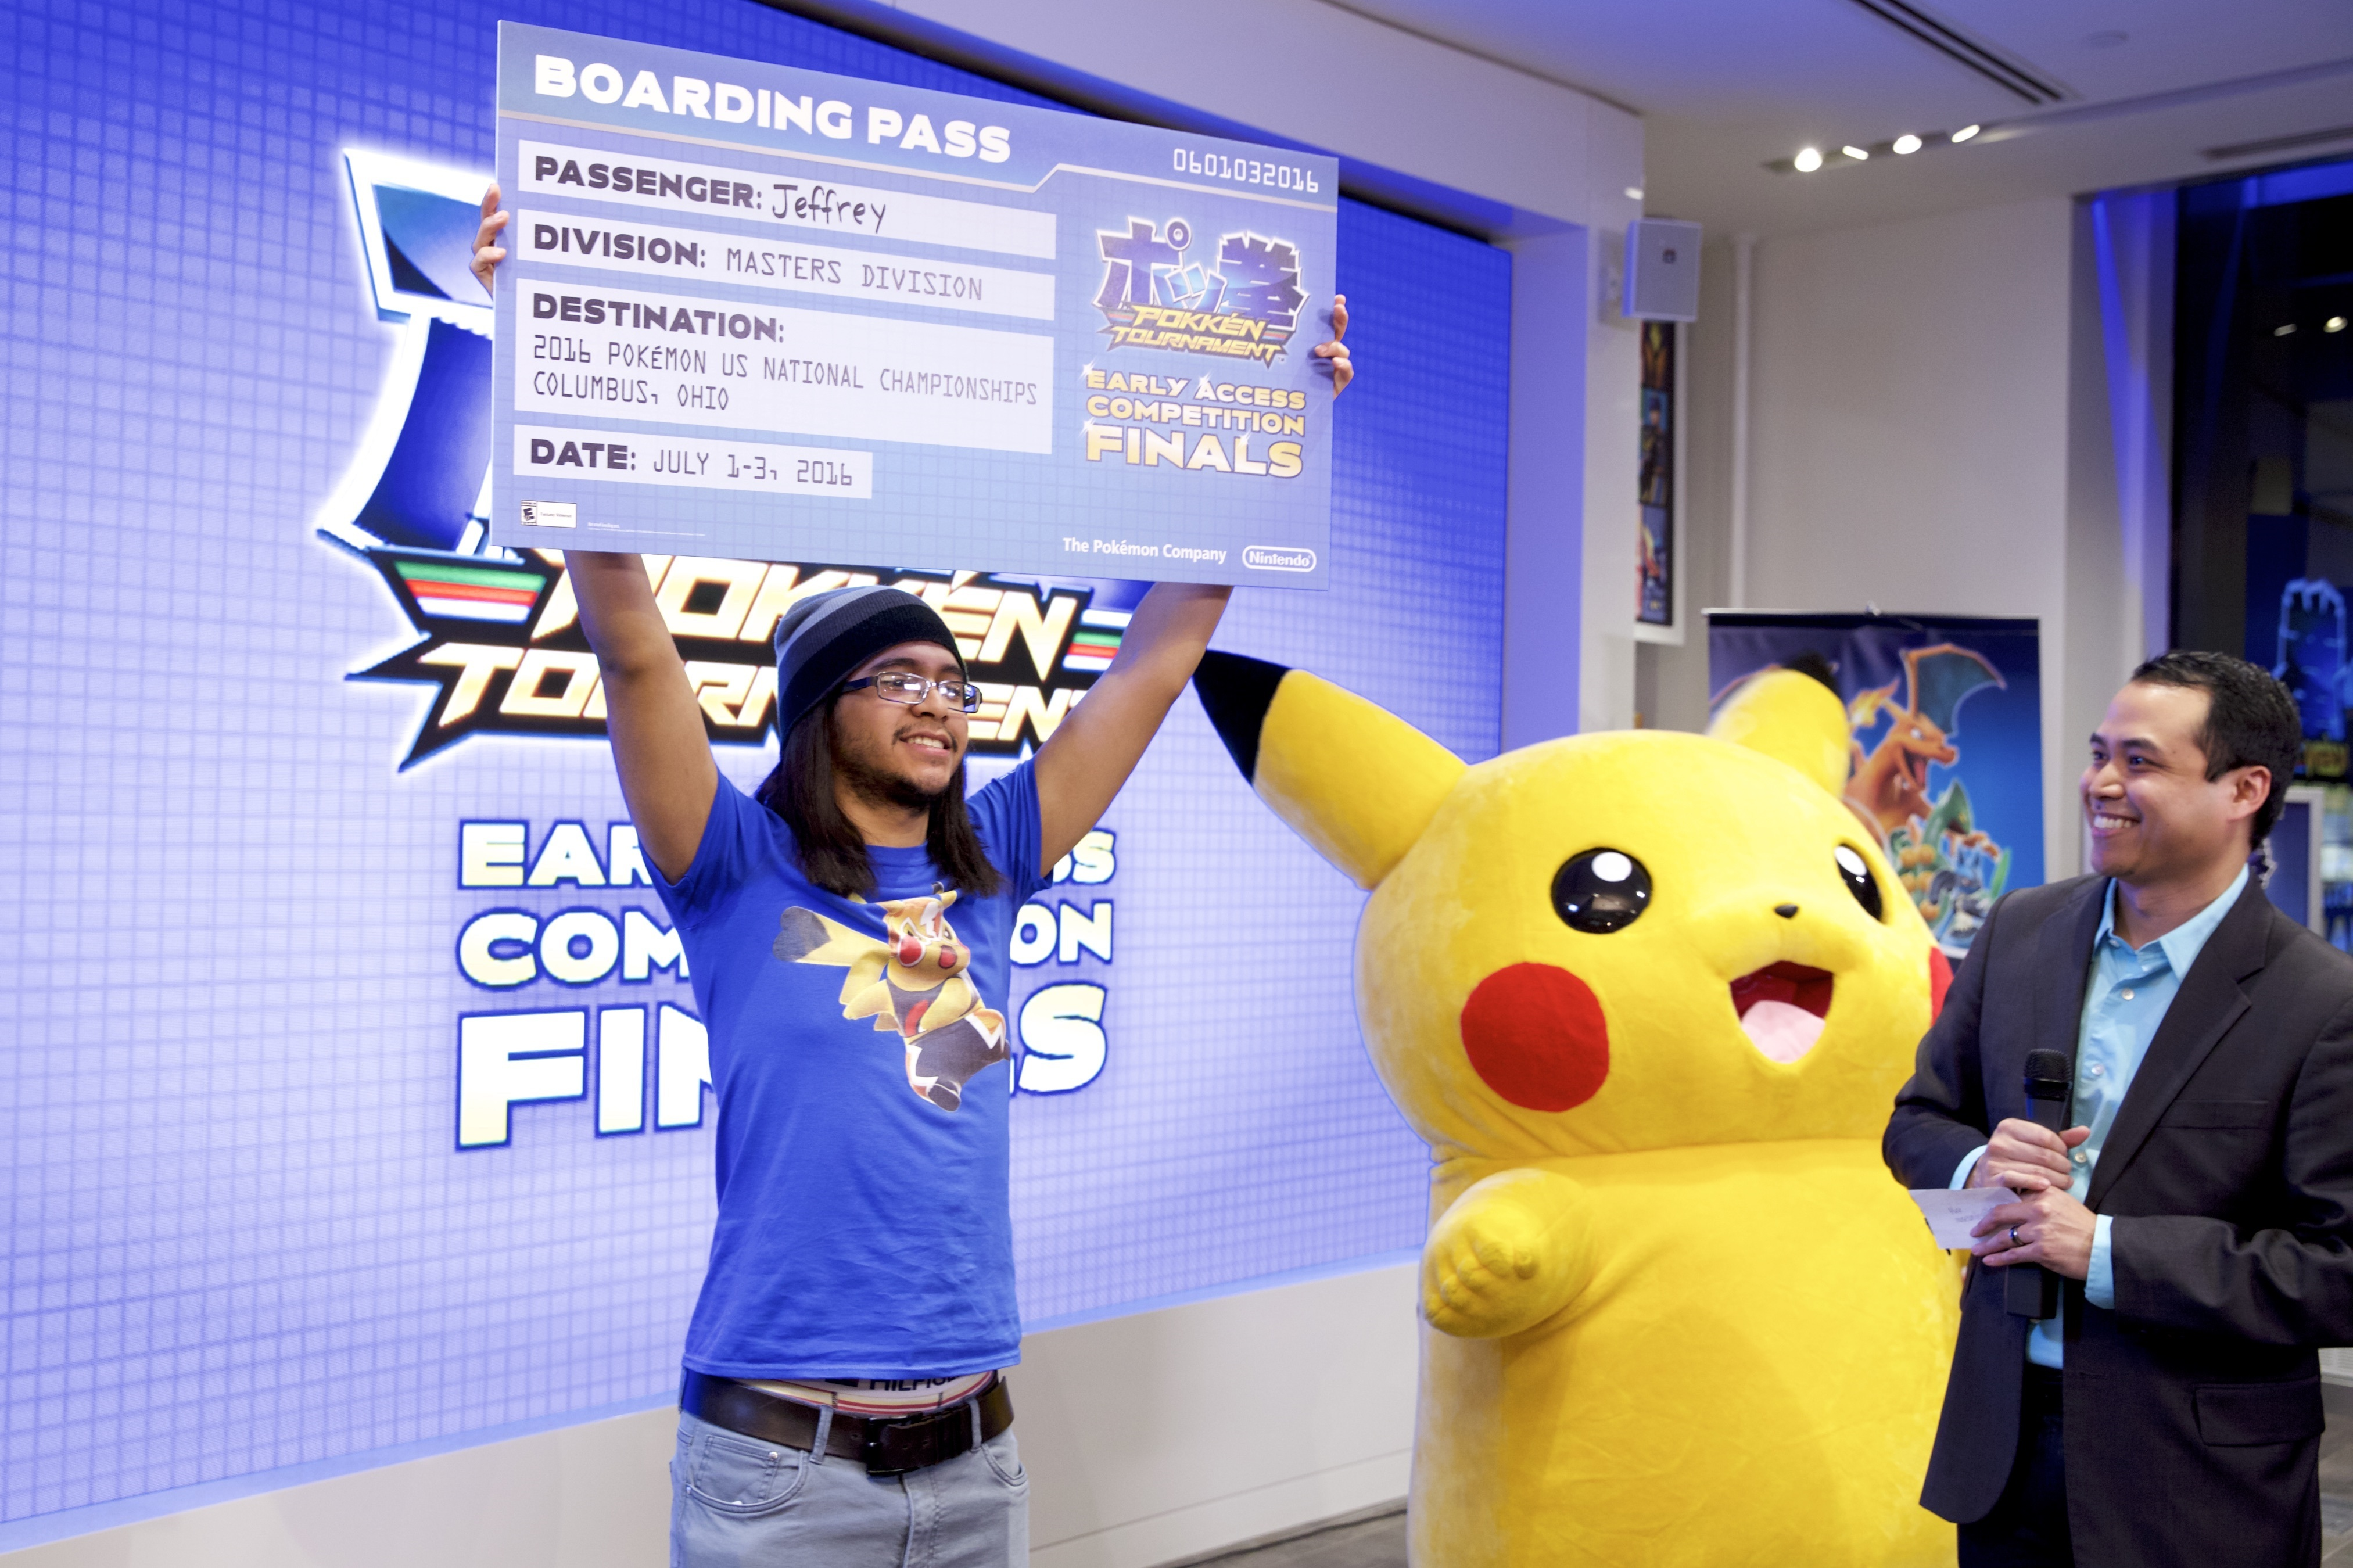 Pokkén Tournament Early Access Competition Finals